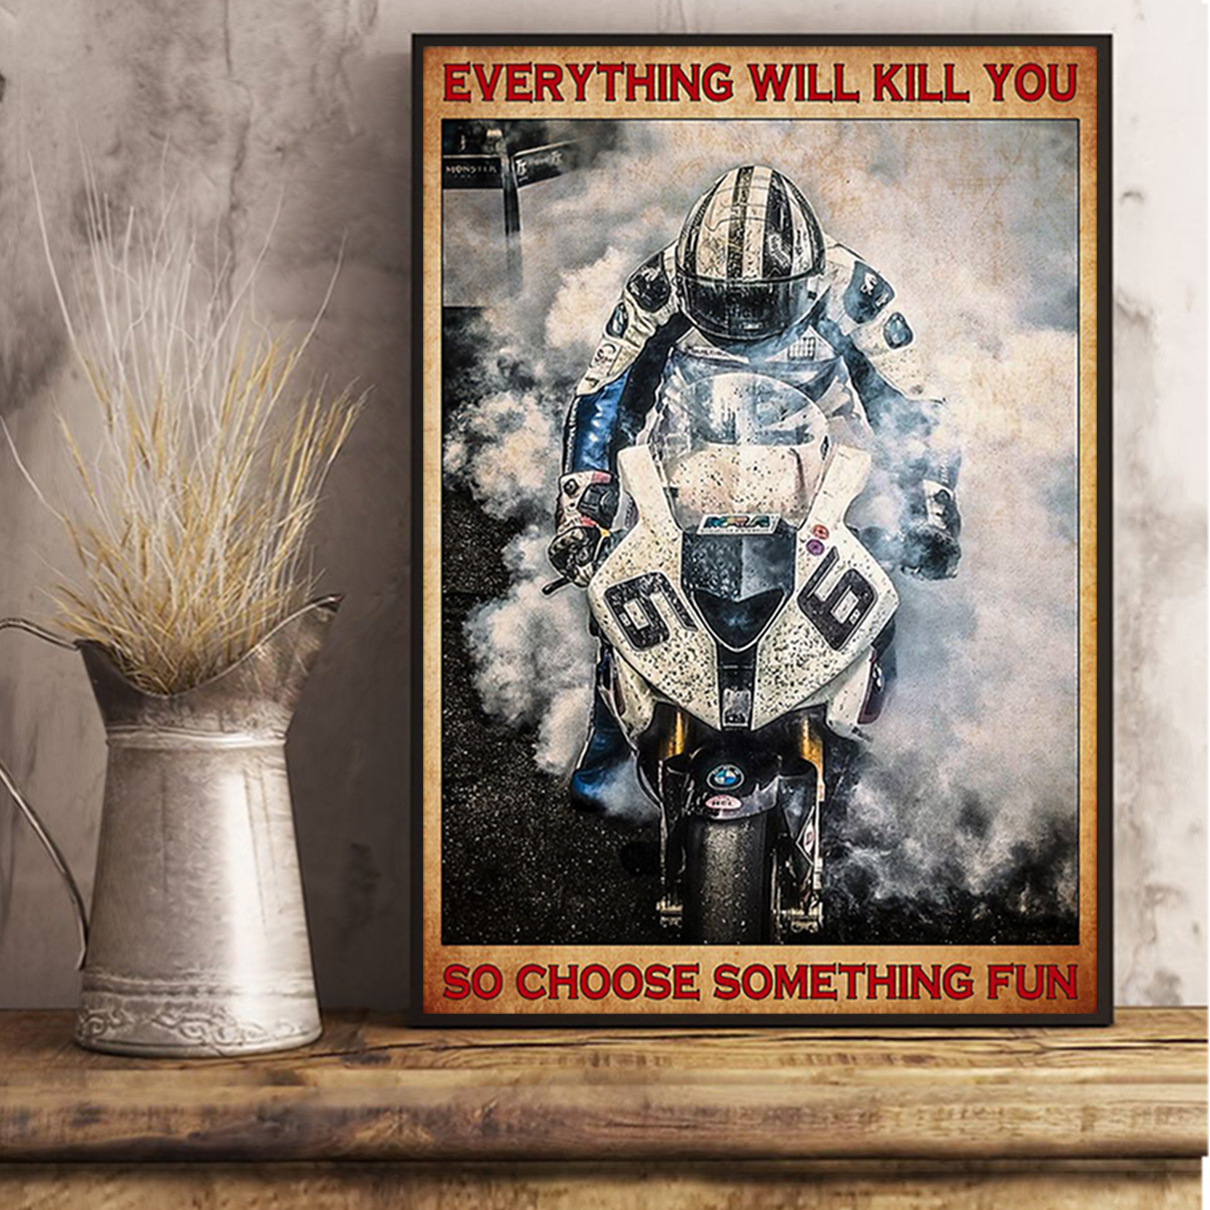 Isle of man tt everything will kill you so choose something fun poster A3